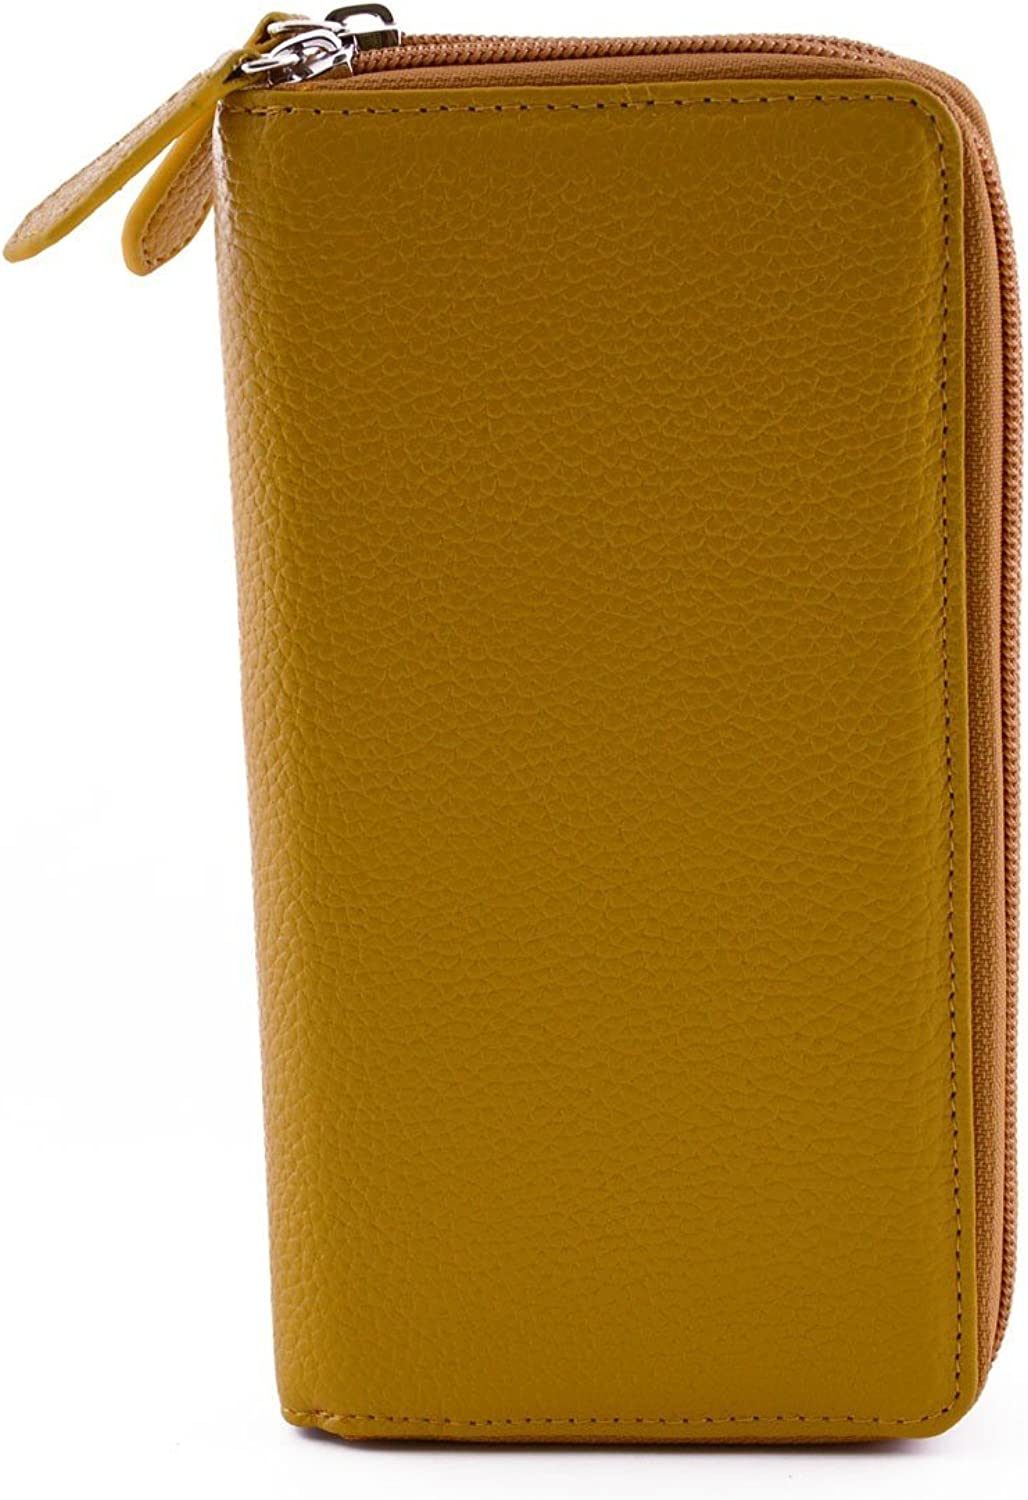 Genuine Leather Woman Wallet 2 Compartments color Yellow